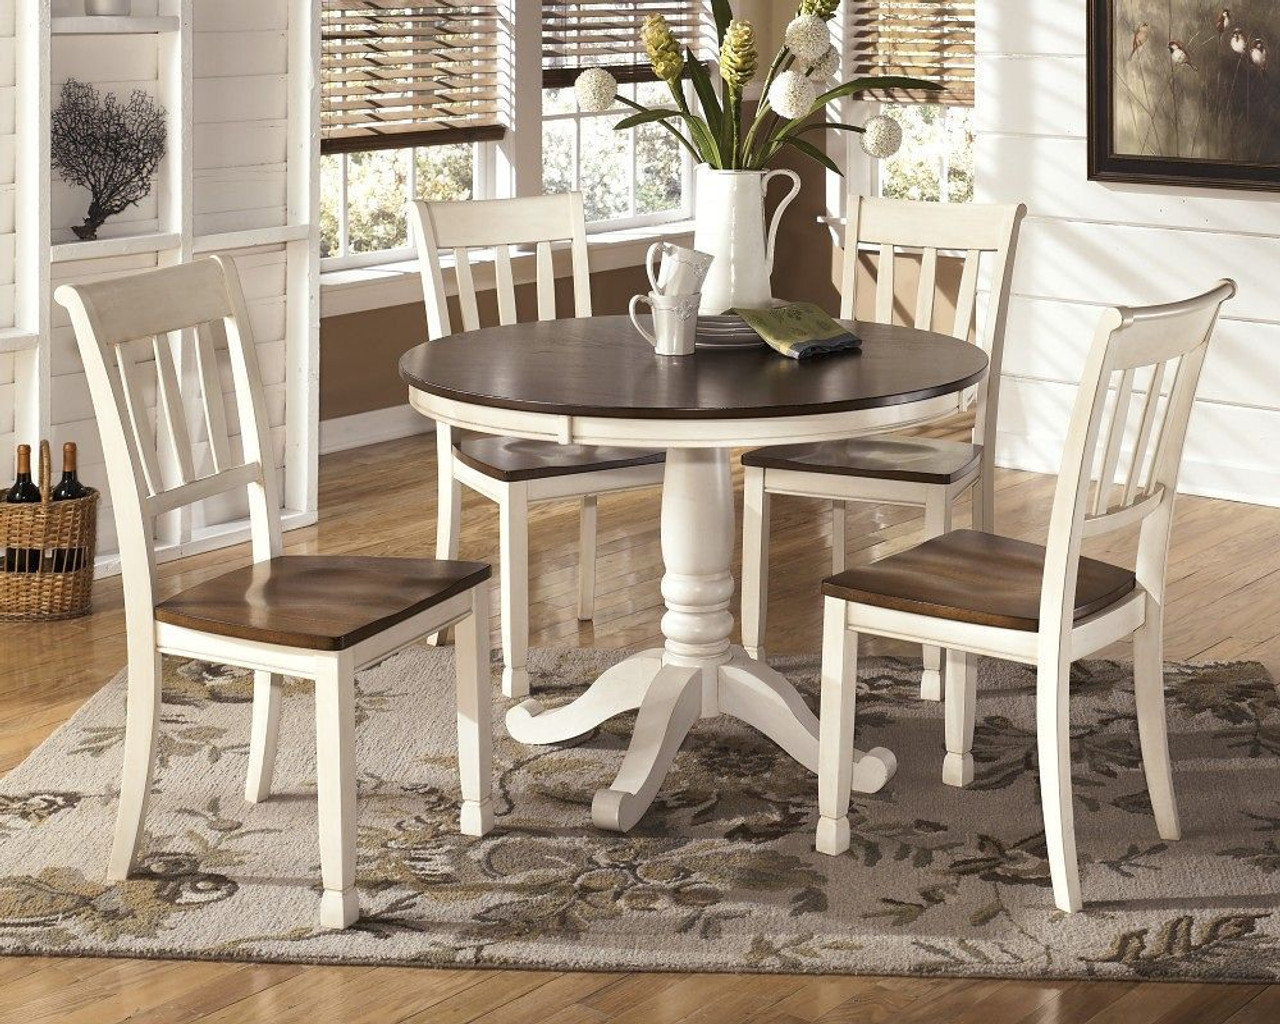 Attirant The Whitesburg Brown/Cottage White 6 Pc. Round Dining Room Set Available At  Affordable Furniture Serving Avon, MA.